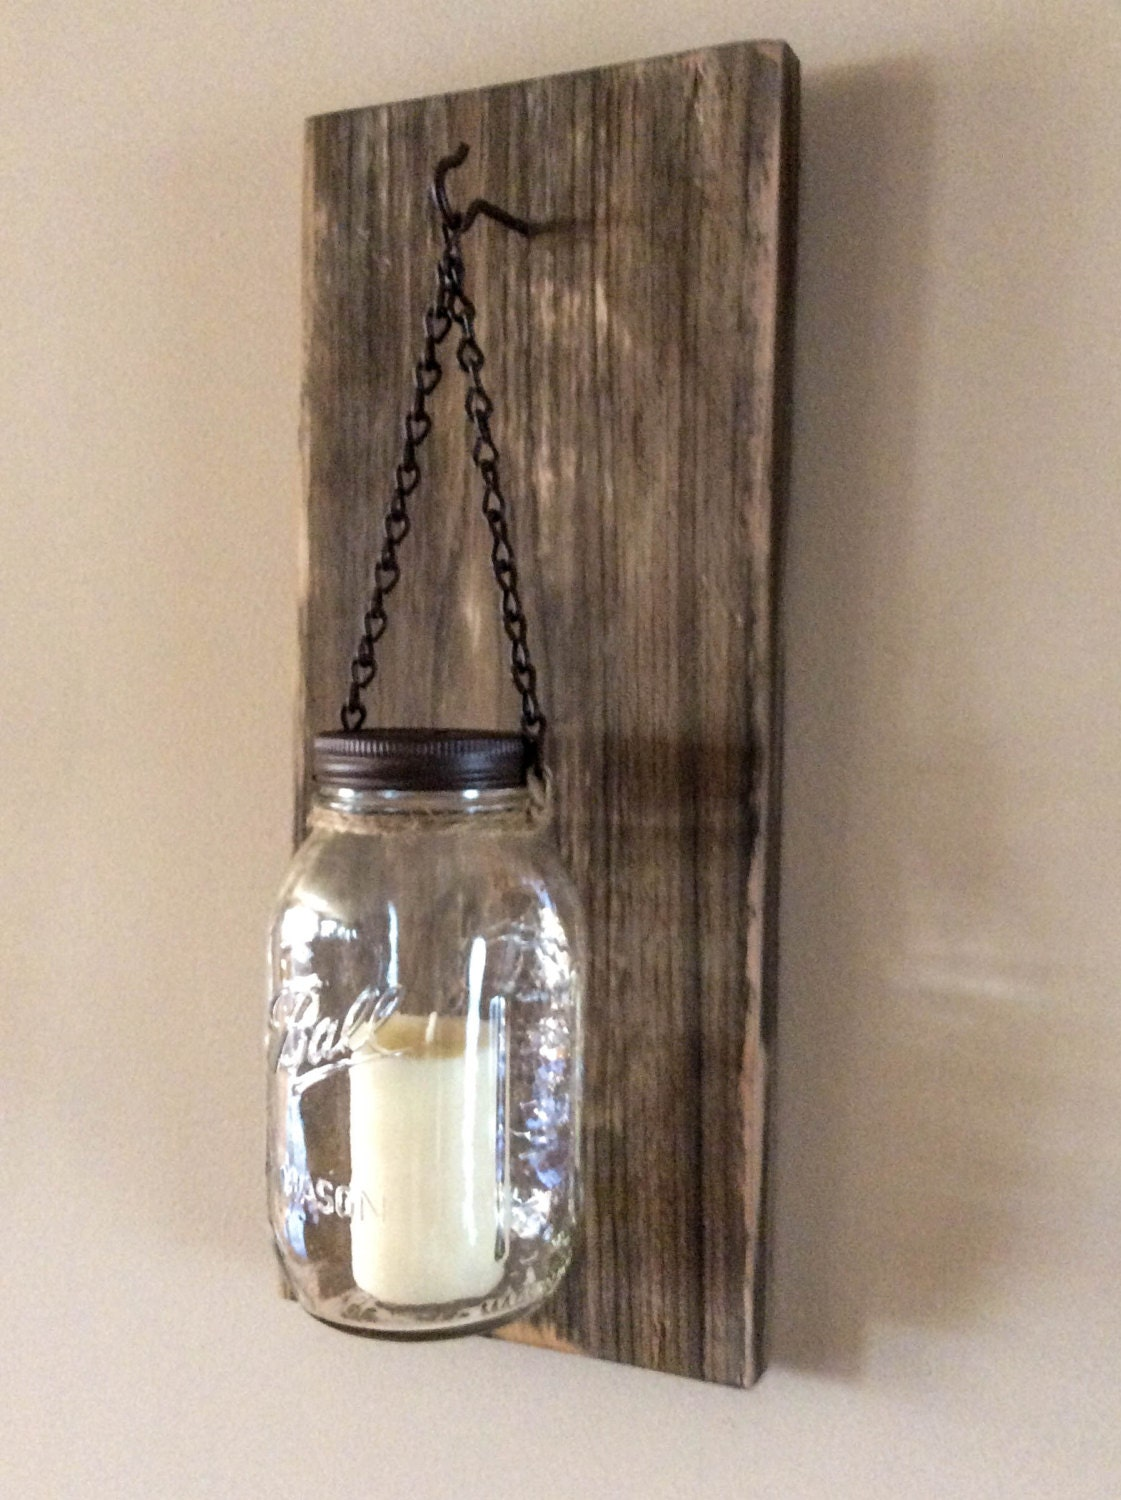 How To Make Wall Sconces For Candles : Rustic Mason Jar Wood Wall Sconce by BCIndustrialTreasure on Etsy